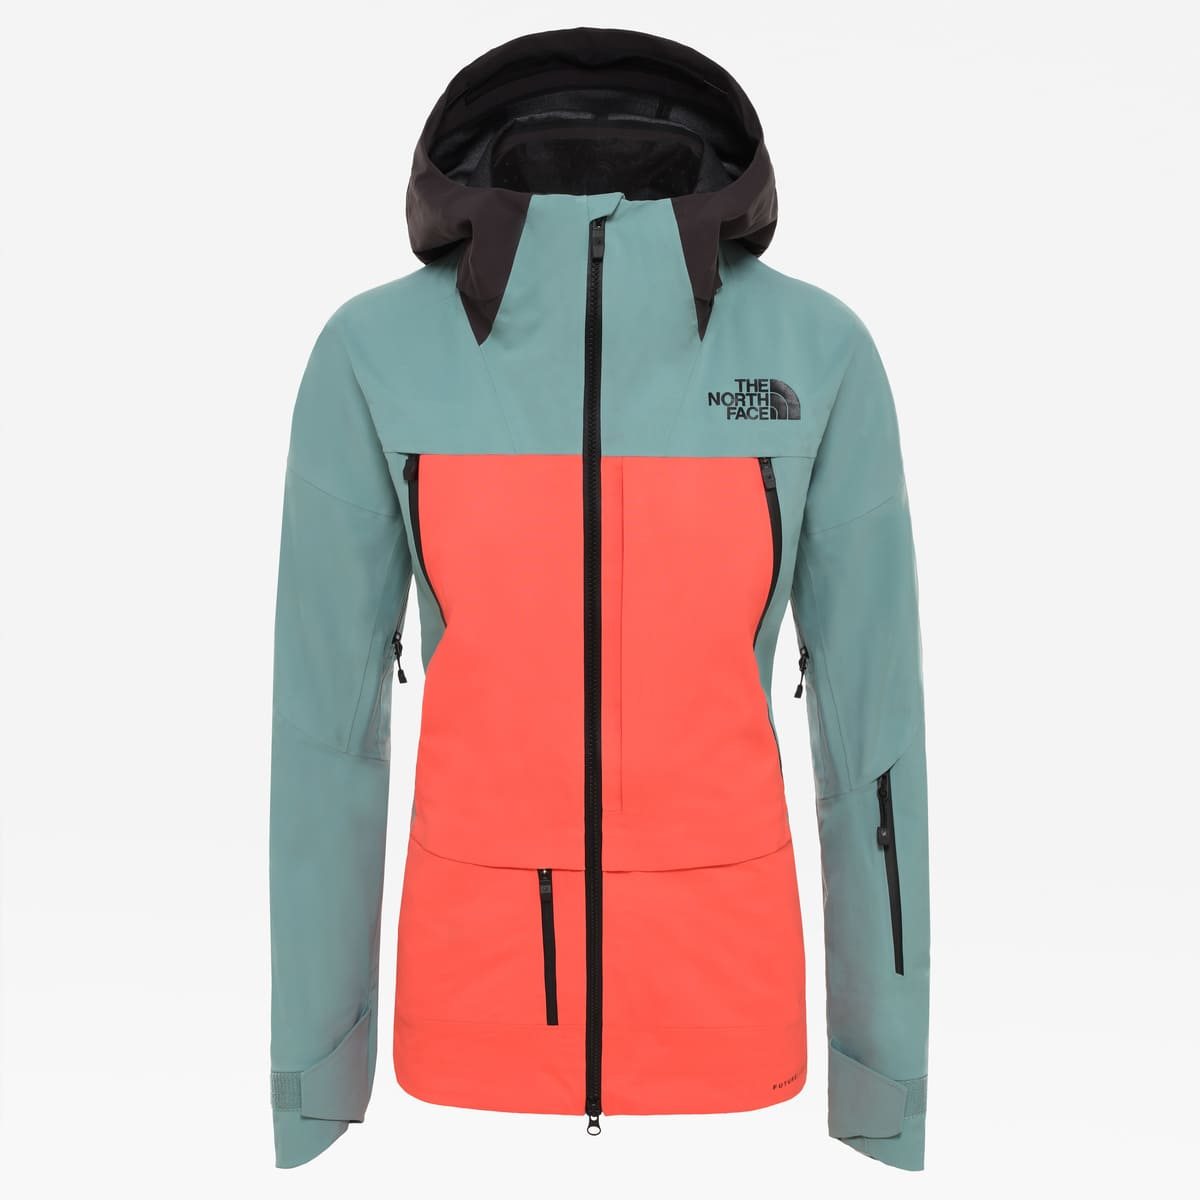 A-CAD Jacke Women - Front | The North Face Futurelight